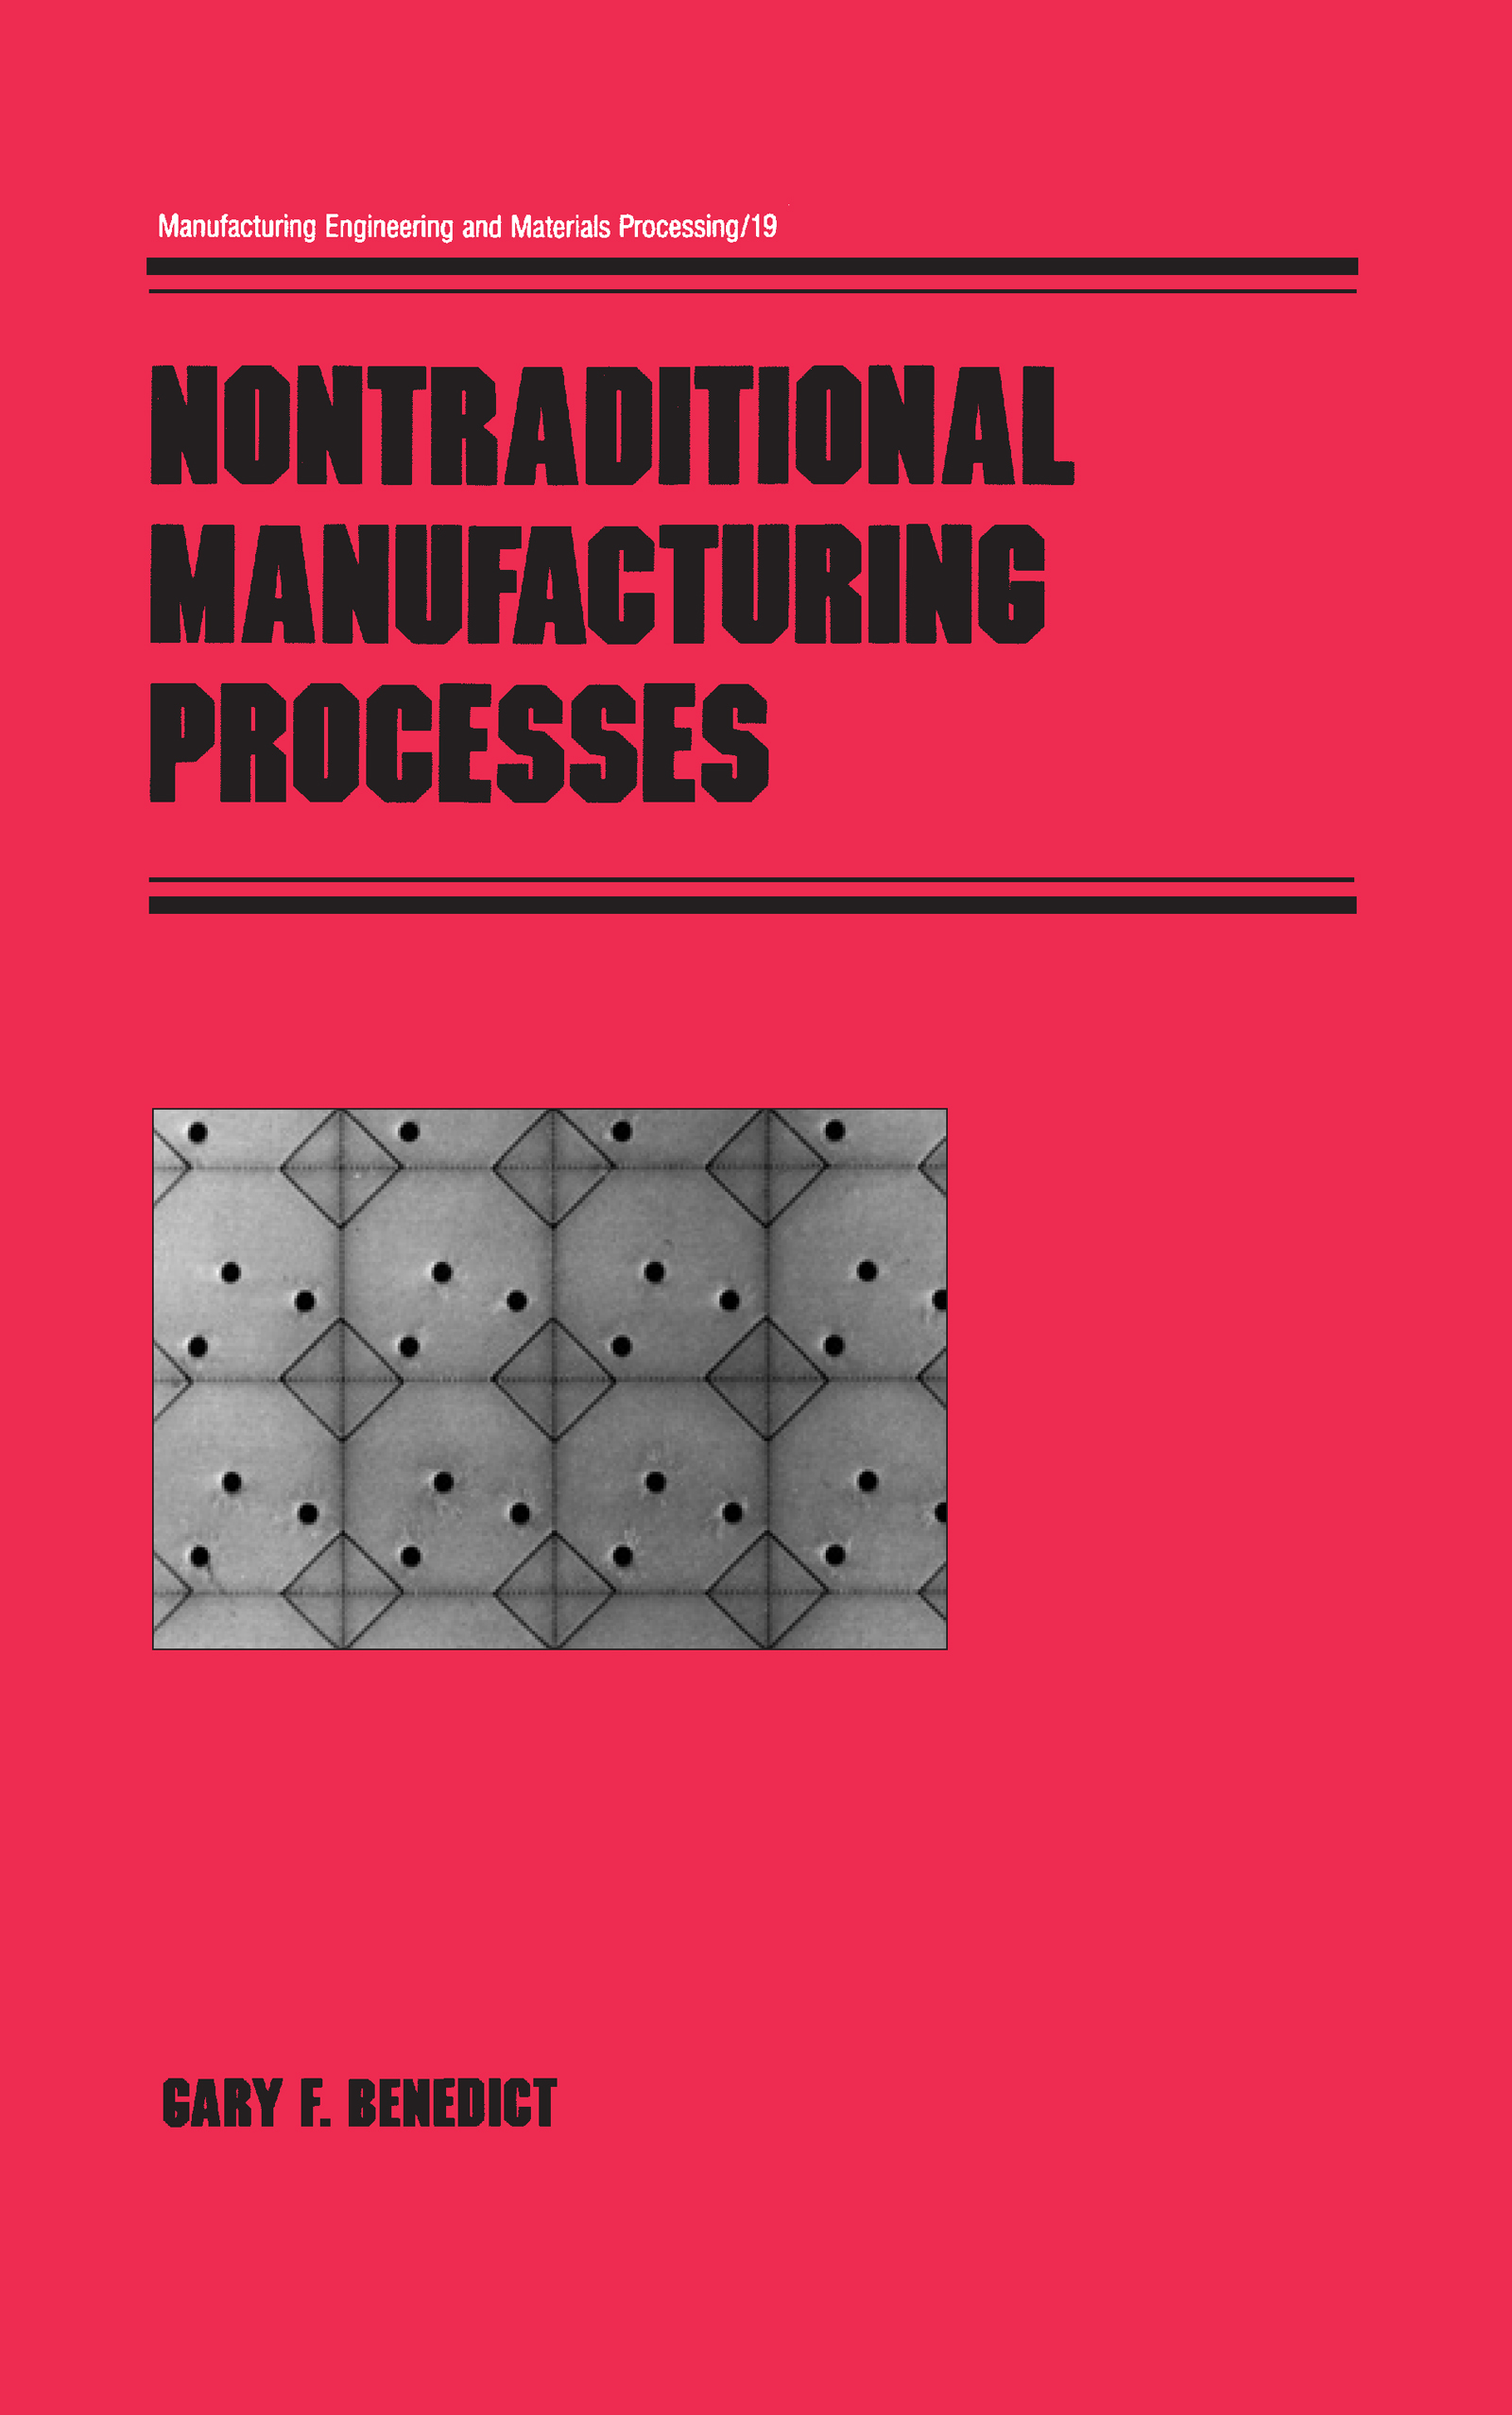 Nontraditional Manufacturing Processes